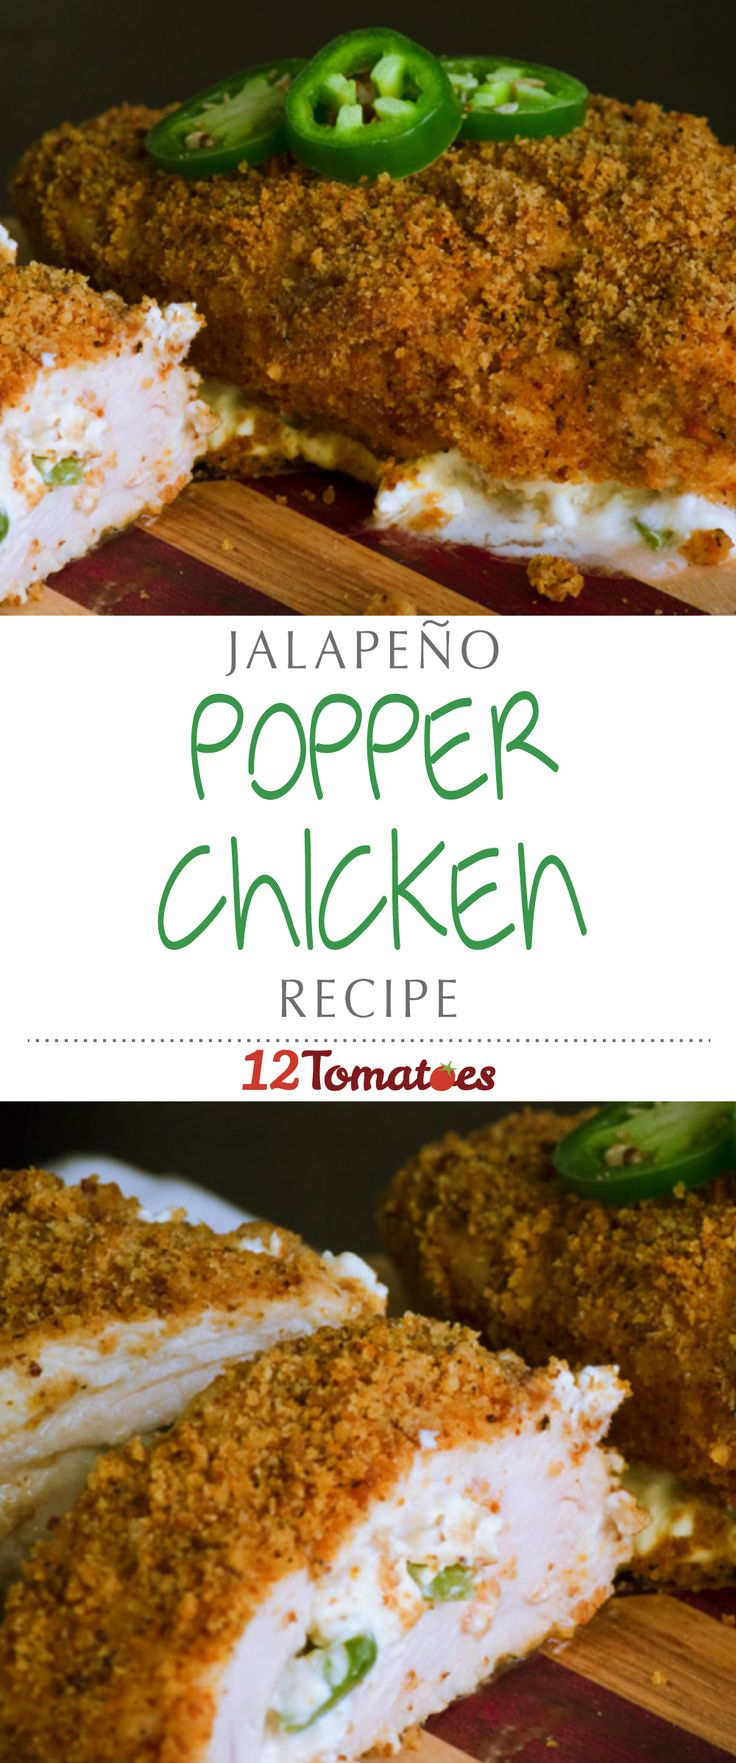 Jalapeño Popper Chicken | Using chicken breasts as the anchor of this recipe, we take all the original components of the popper (jalapeño and cream cheese are the stars of the show) and put everything together in a way that's deliciously crispy and decadently cheesy…you'll be hooked after the first bite!